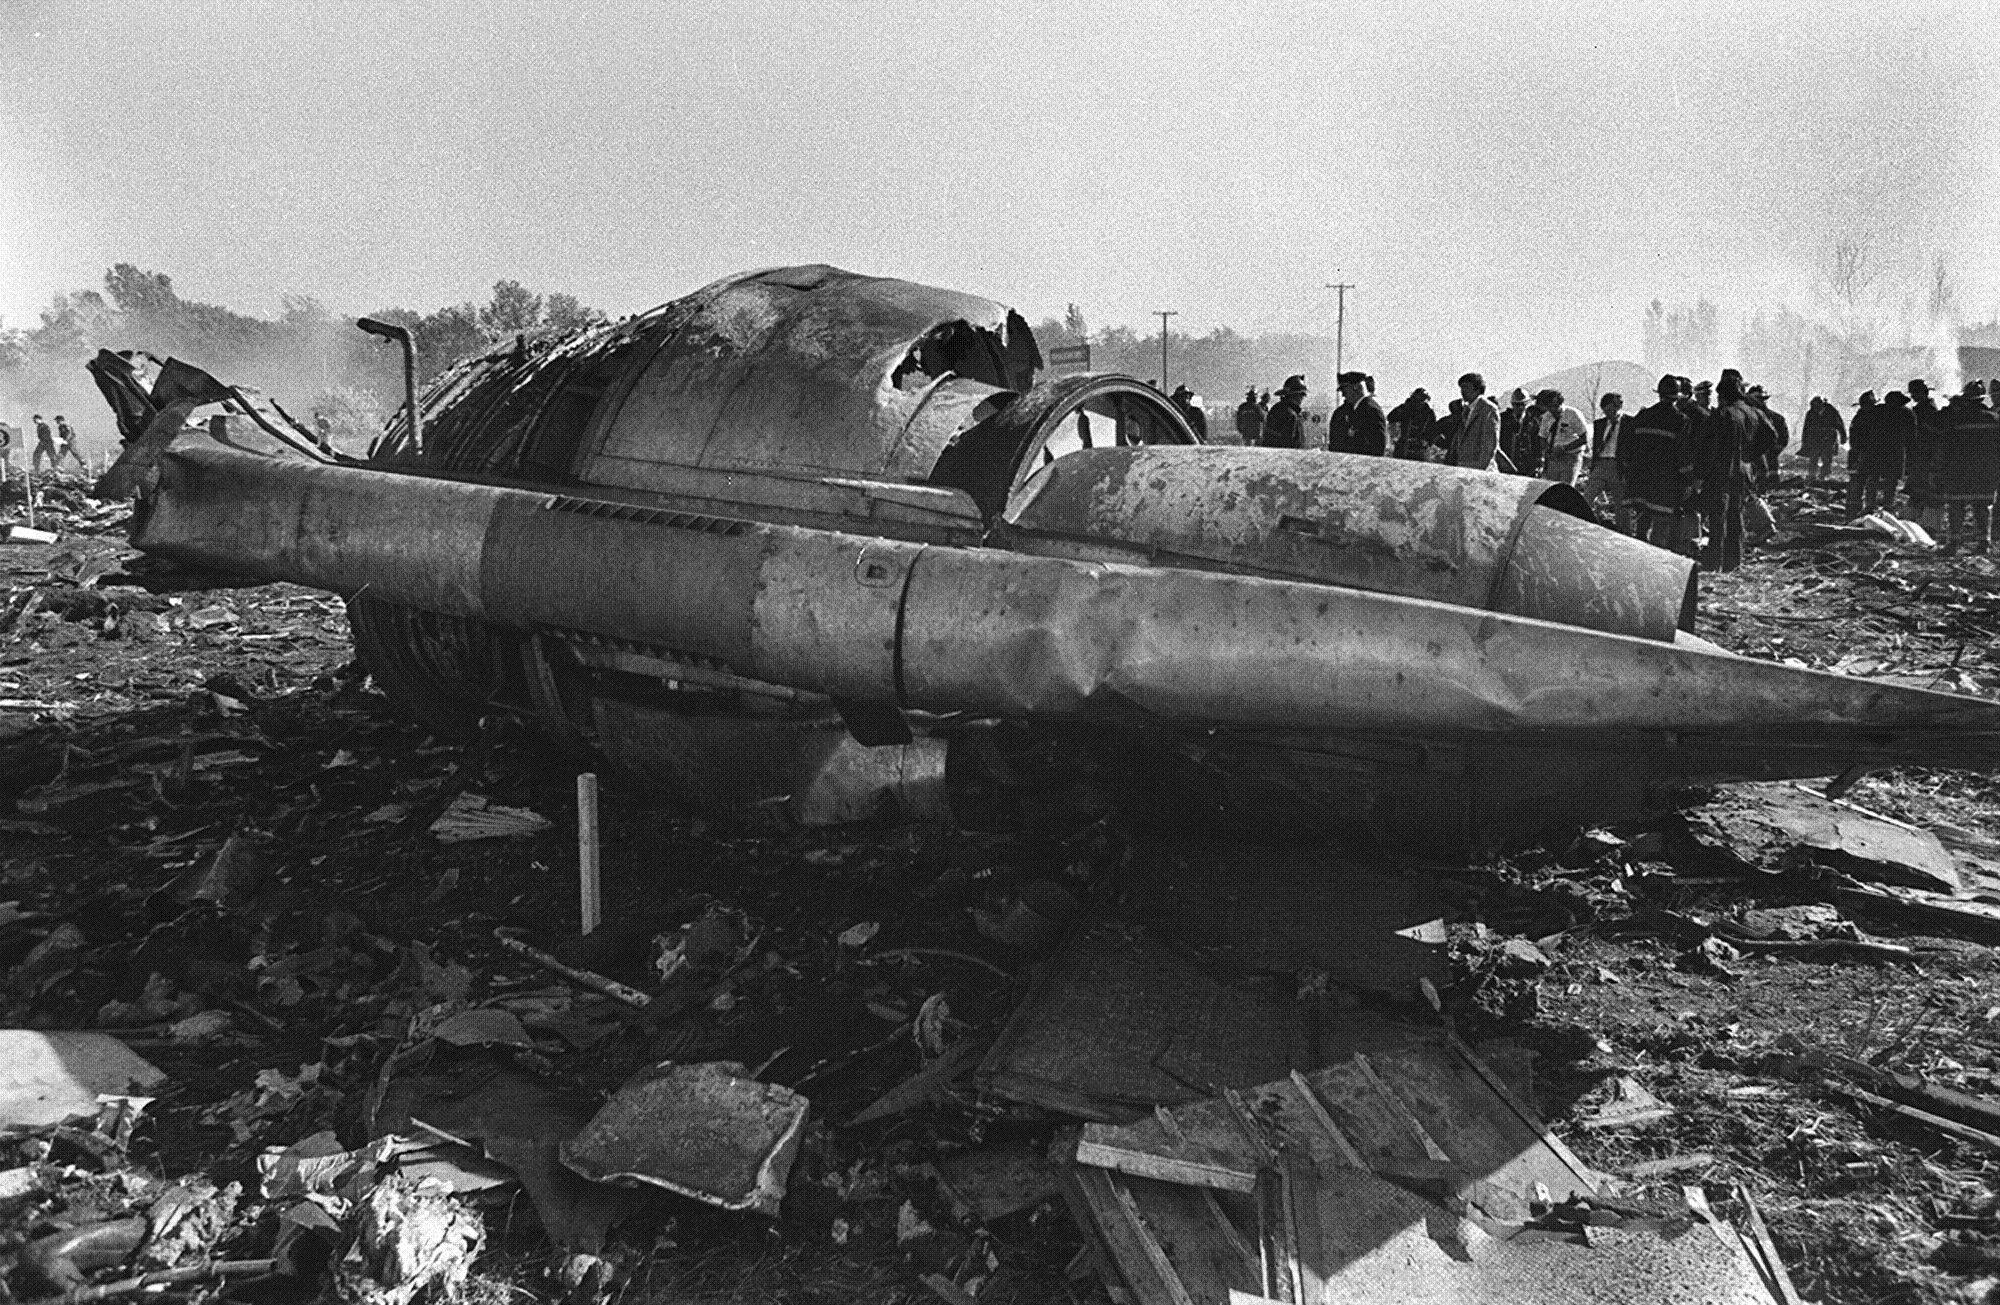 The scene at the crash of flight 191 on May 25, 1979